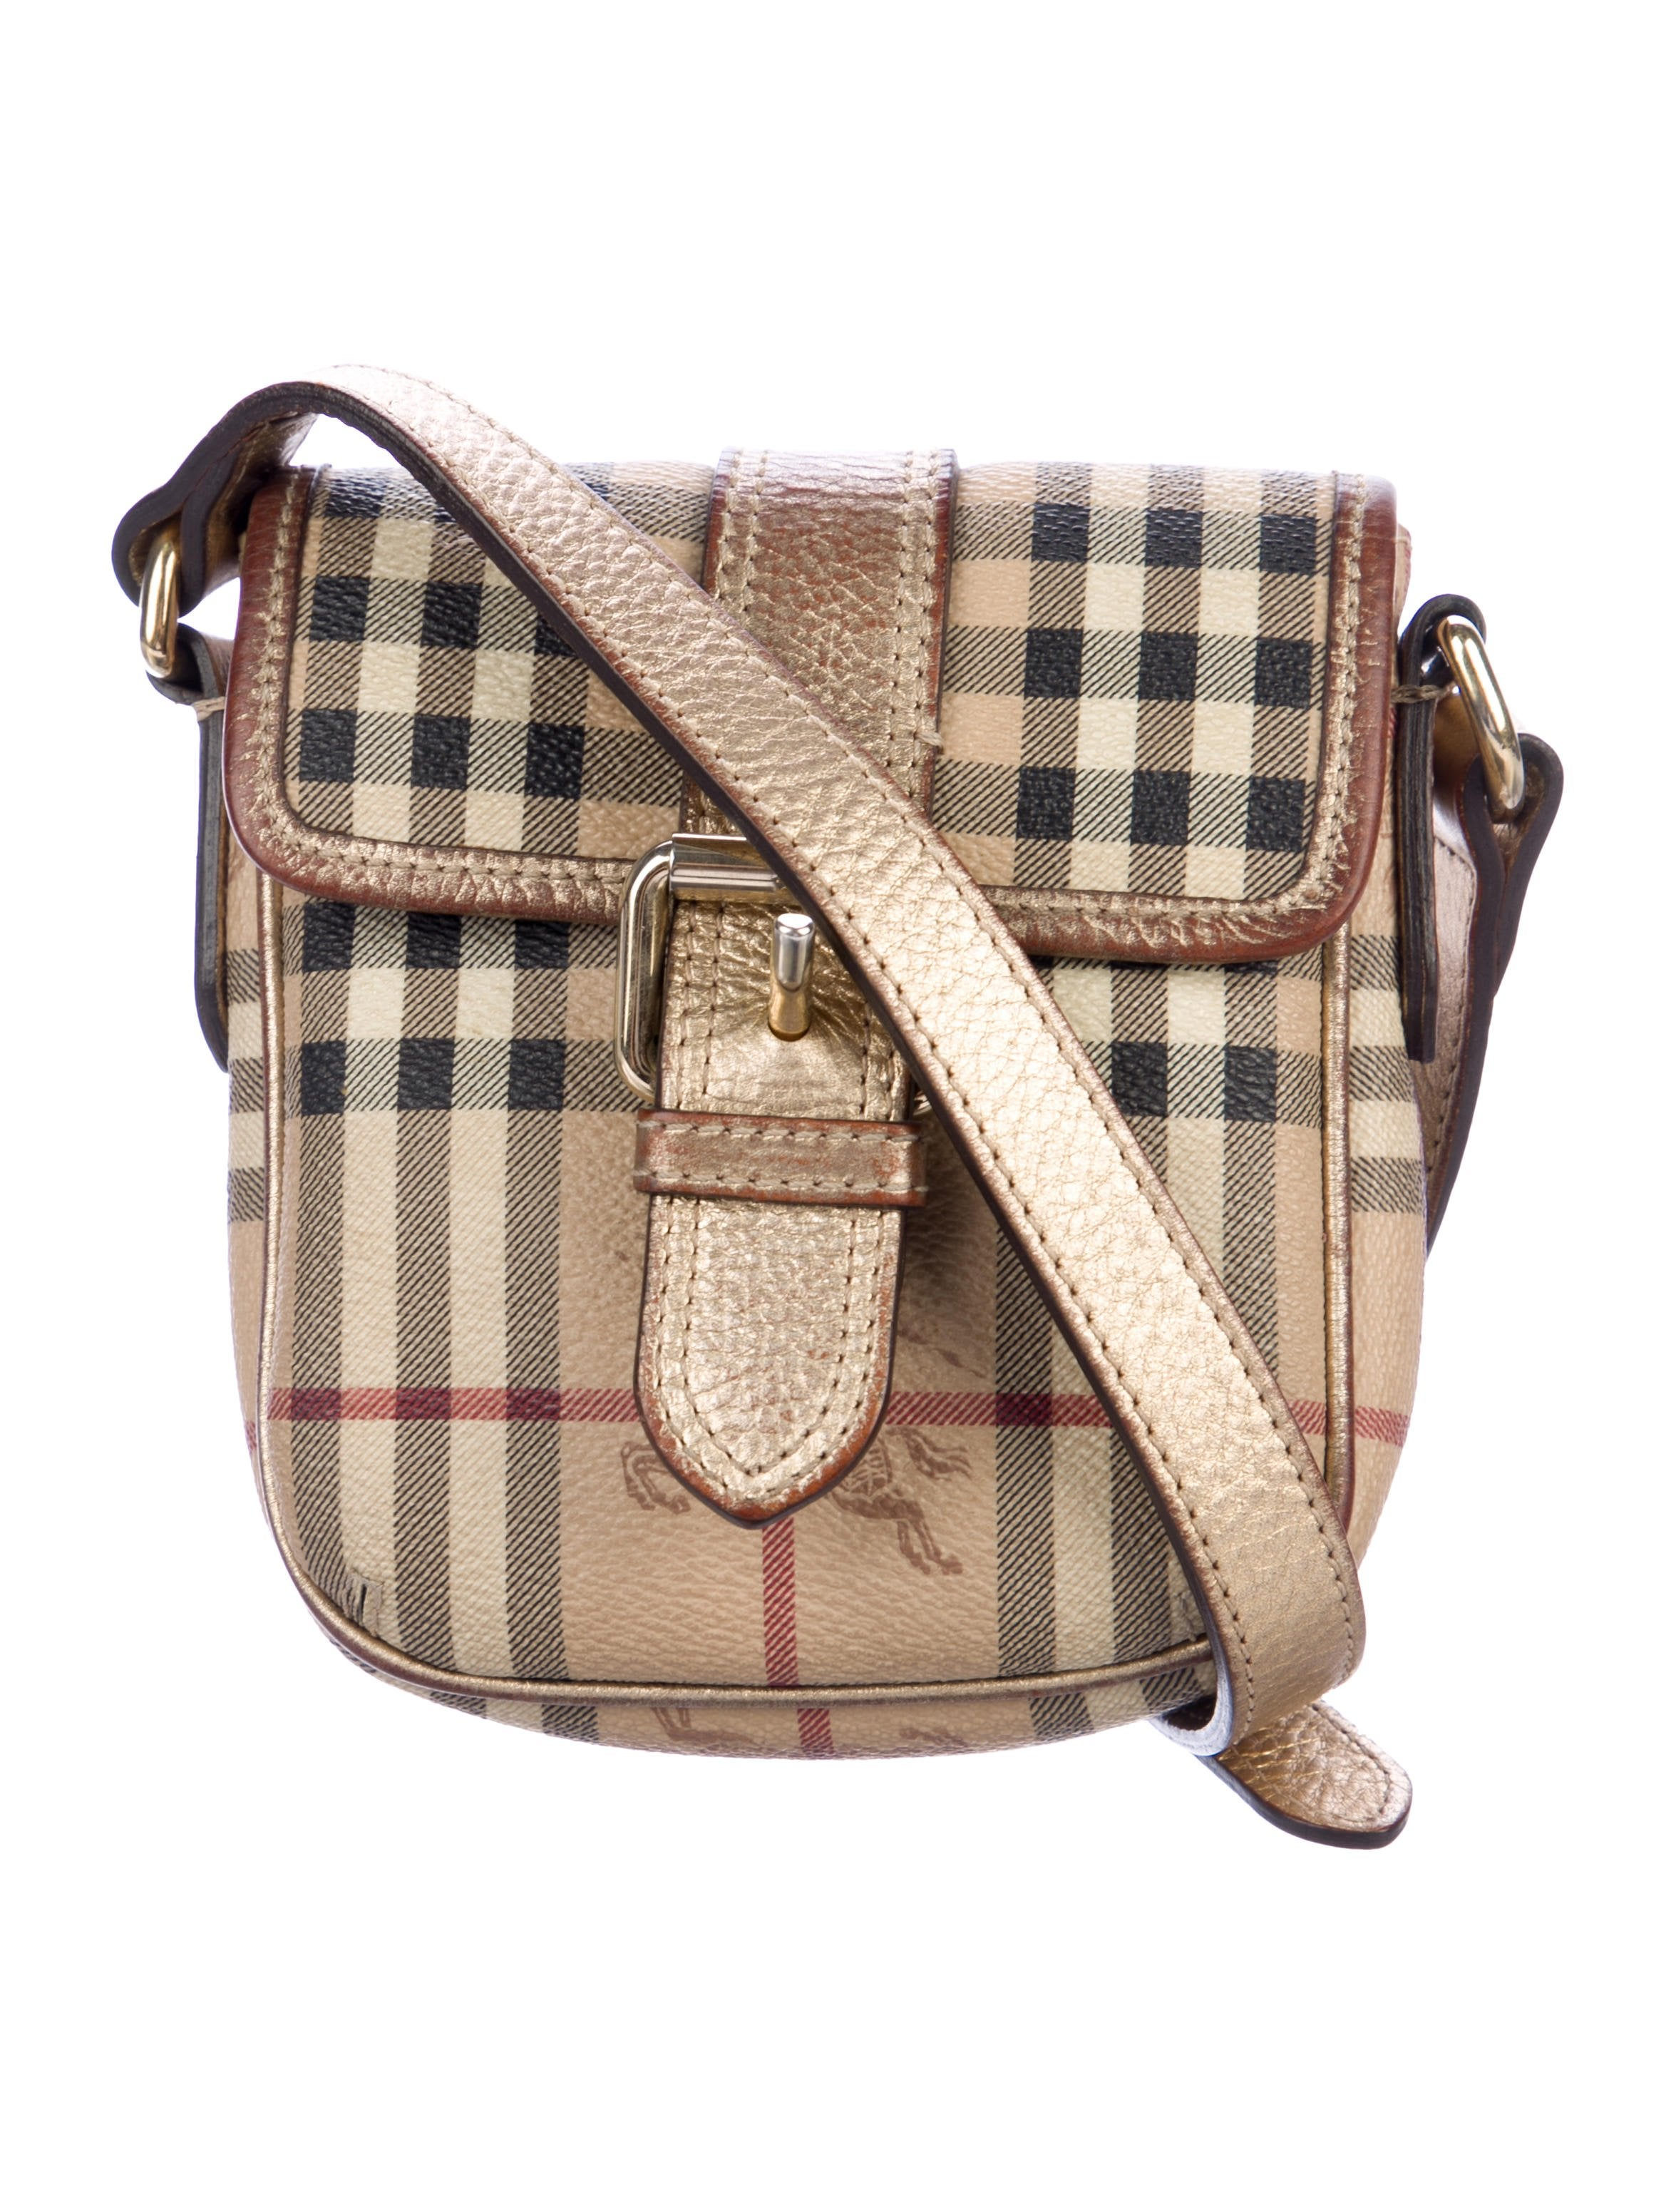 Haymarket Check Crossbody Bag by Burberry